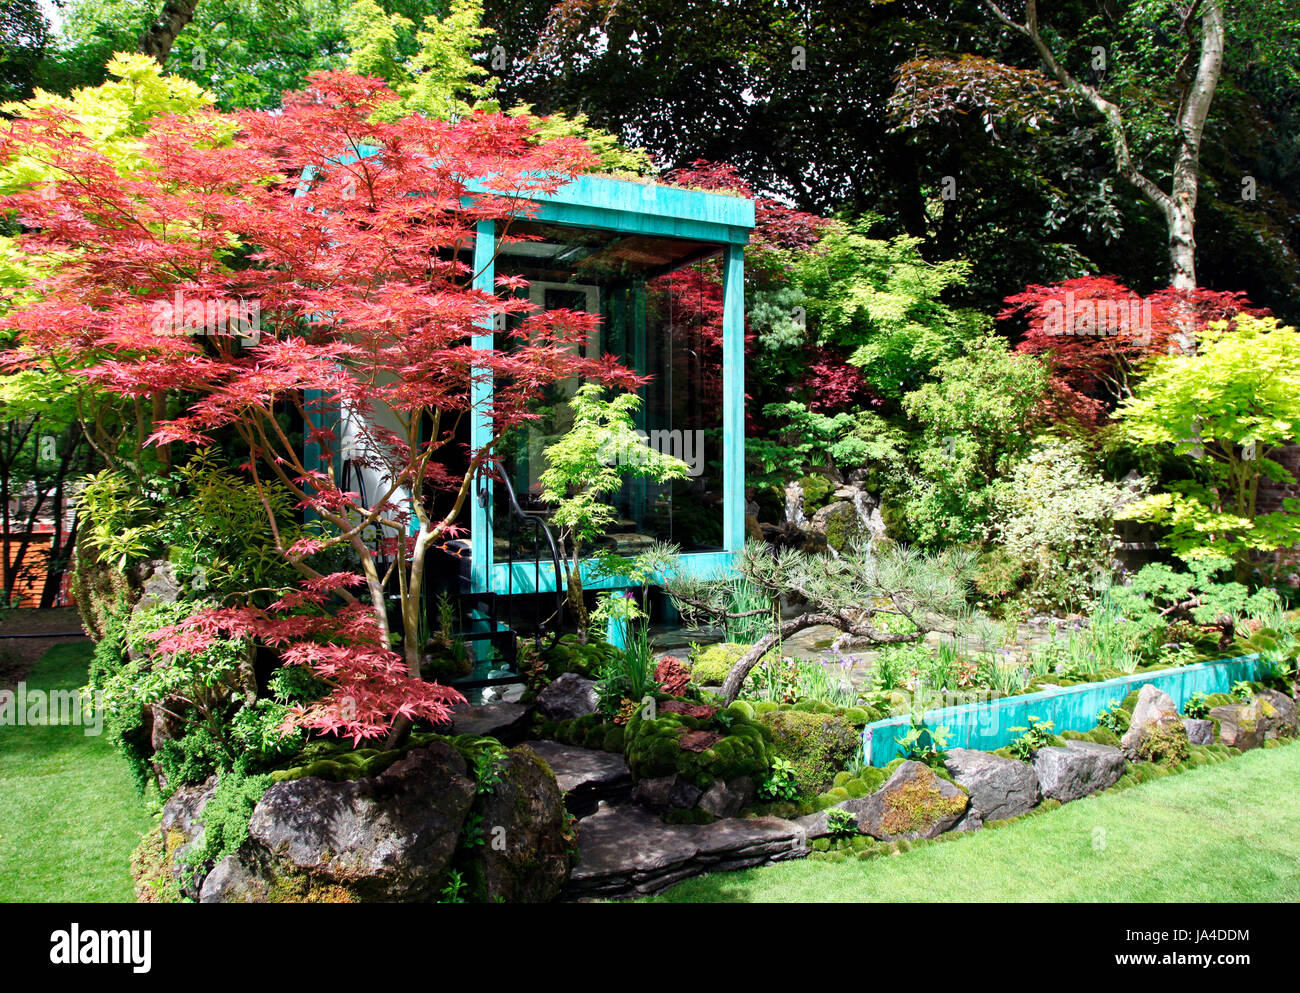 Superior Gosho No Niwa, No Wall, No War, Artisan Garden By Kazyuki Ishihara At RHS  Chelsea Flower Show 2017